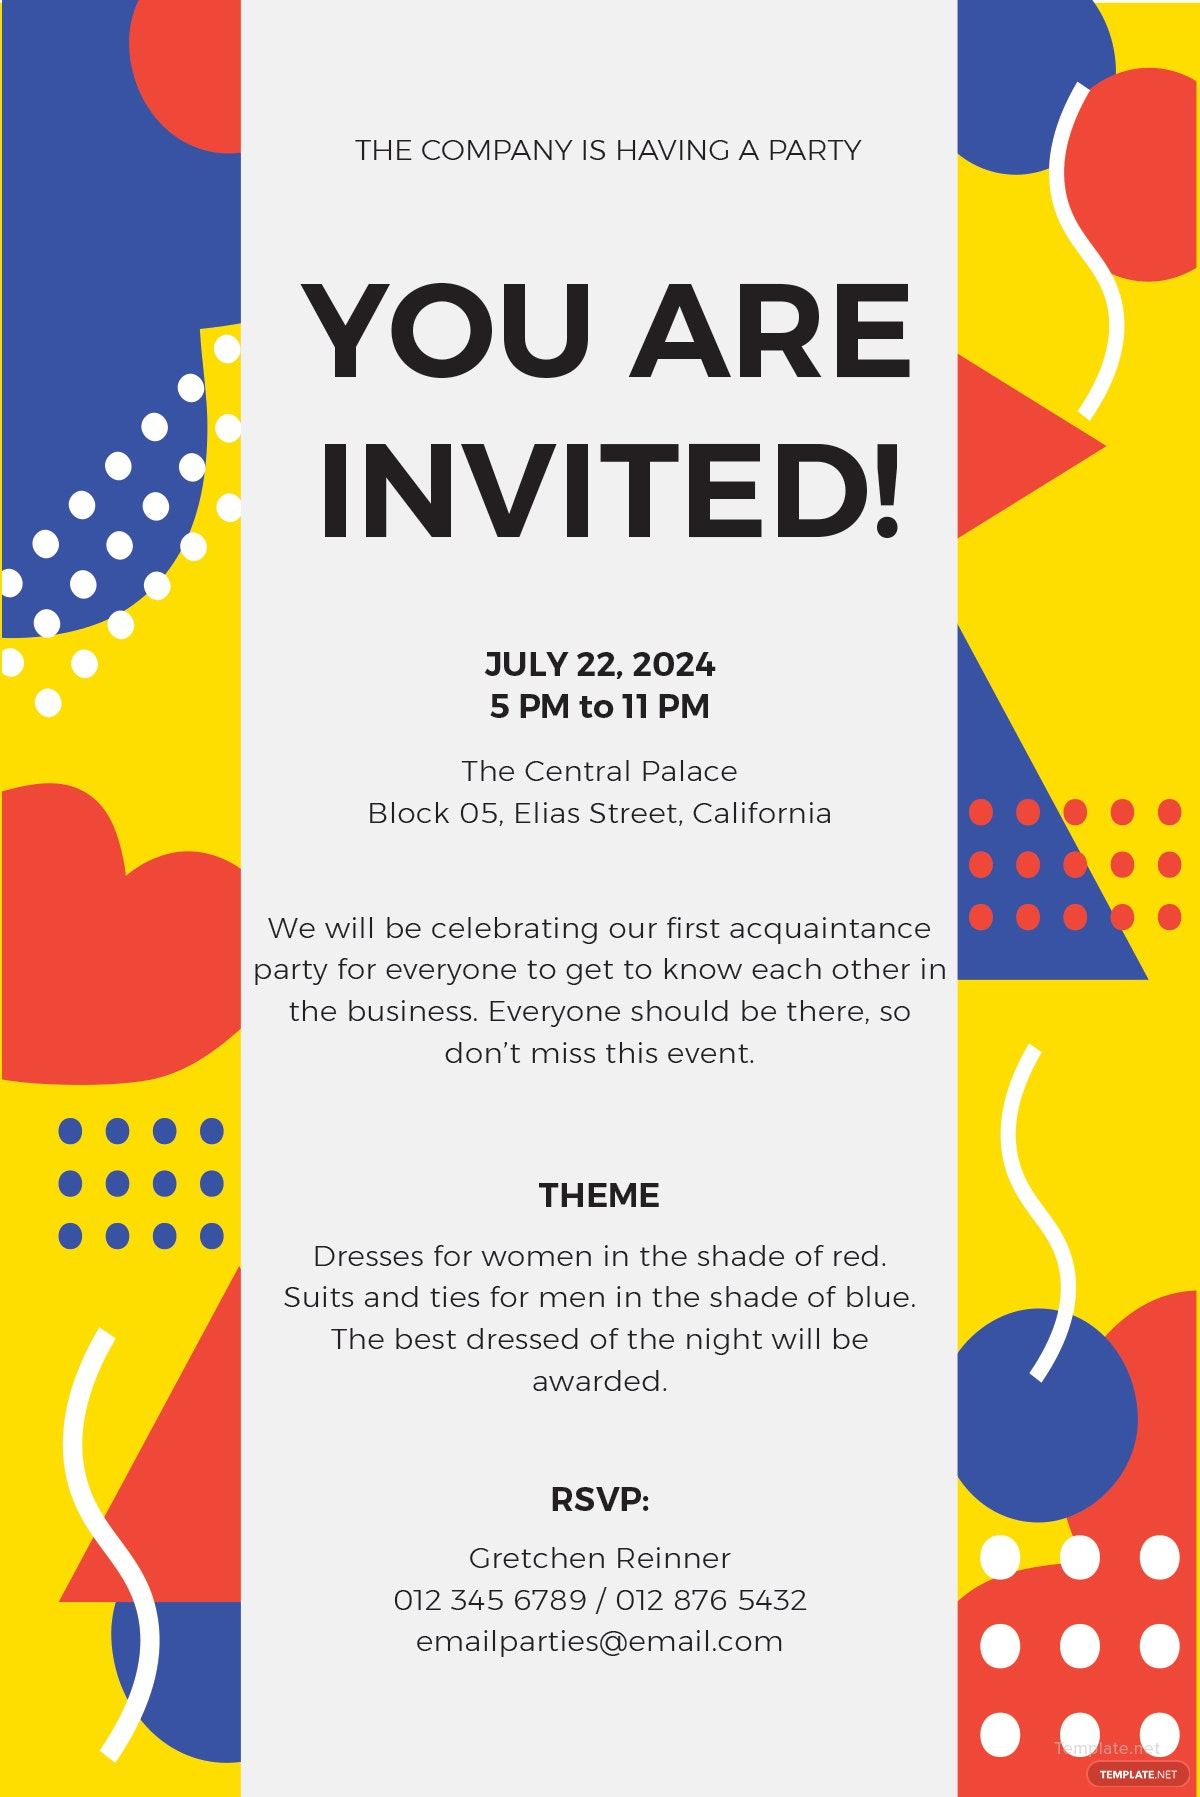 Free Email Party Invitation Template in MS Word, Publisher ...